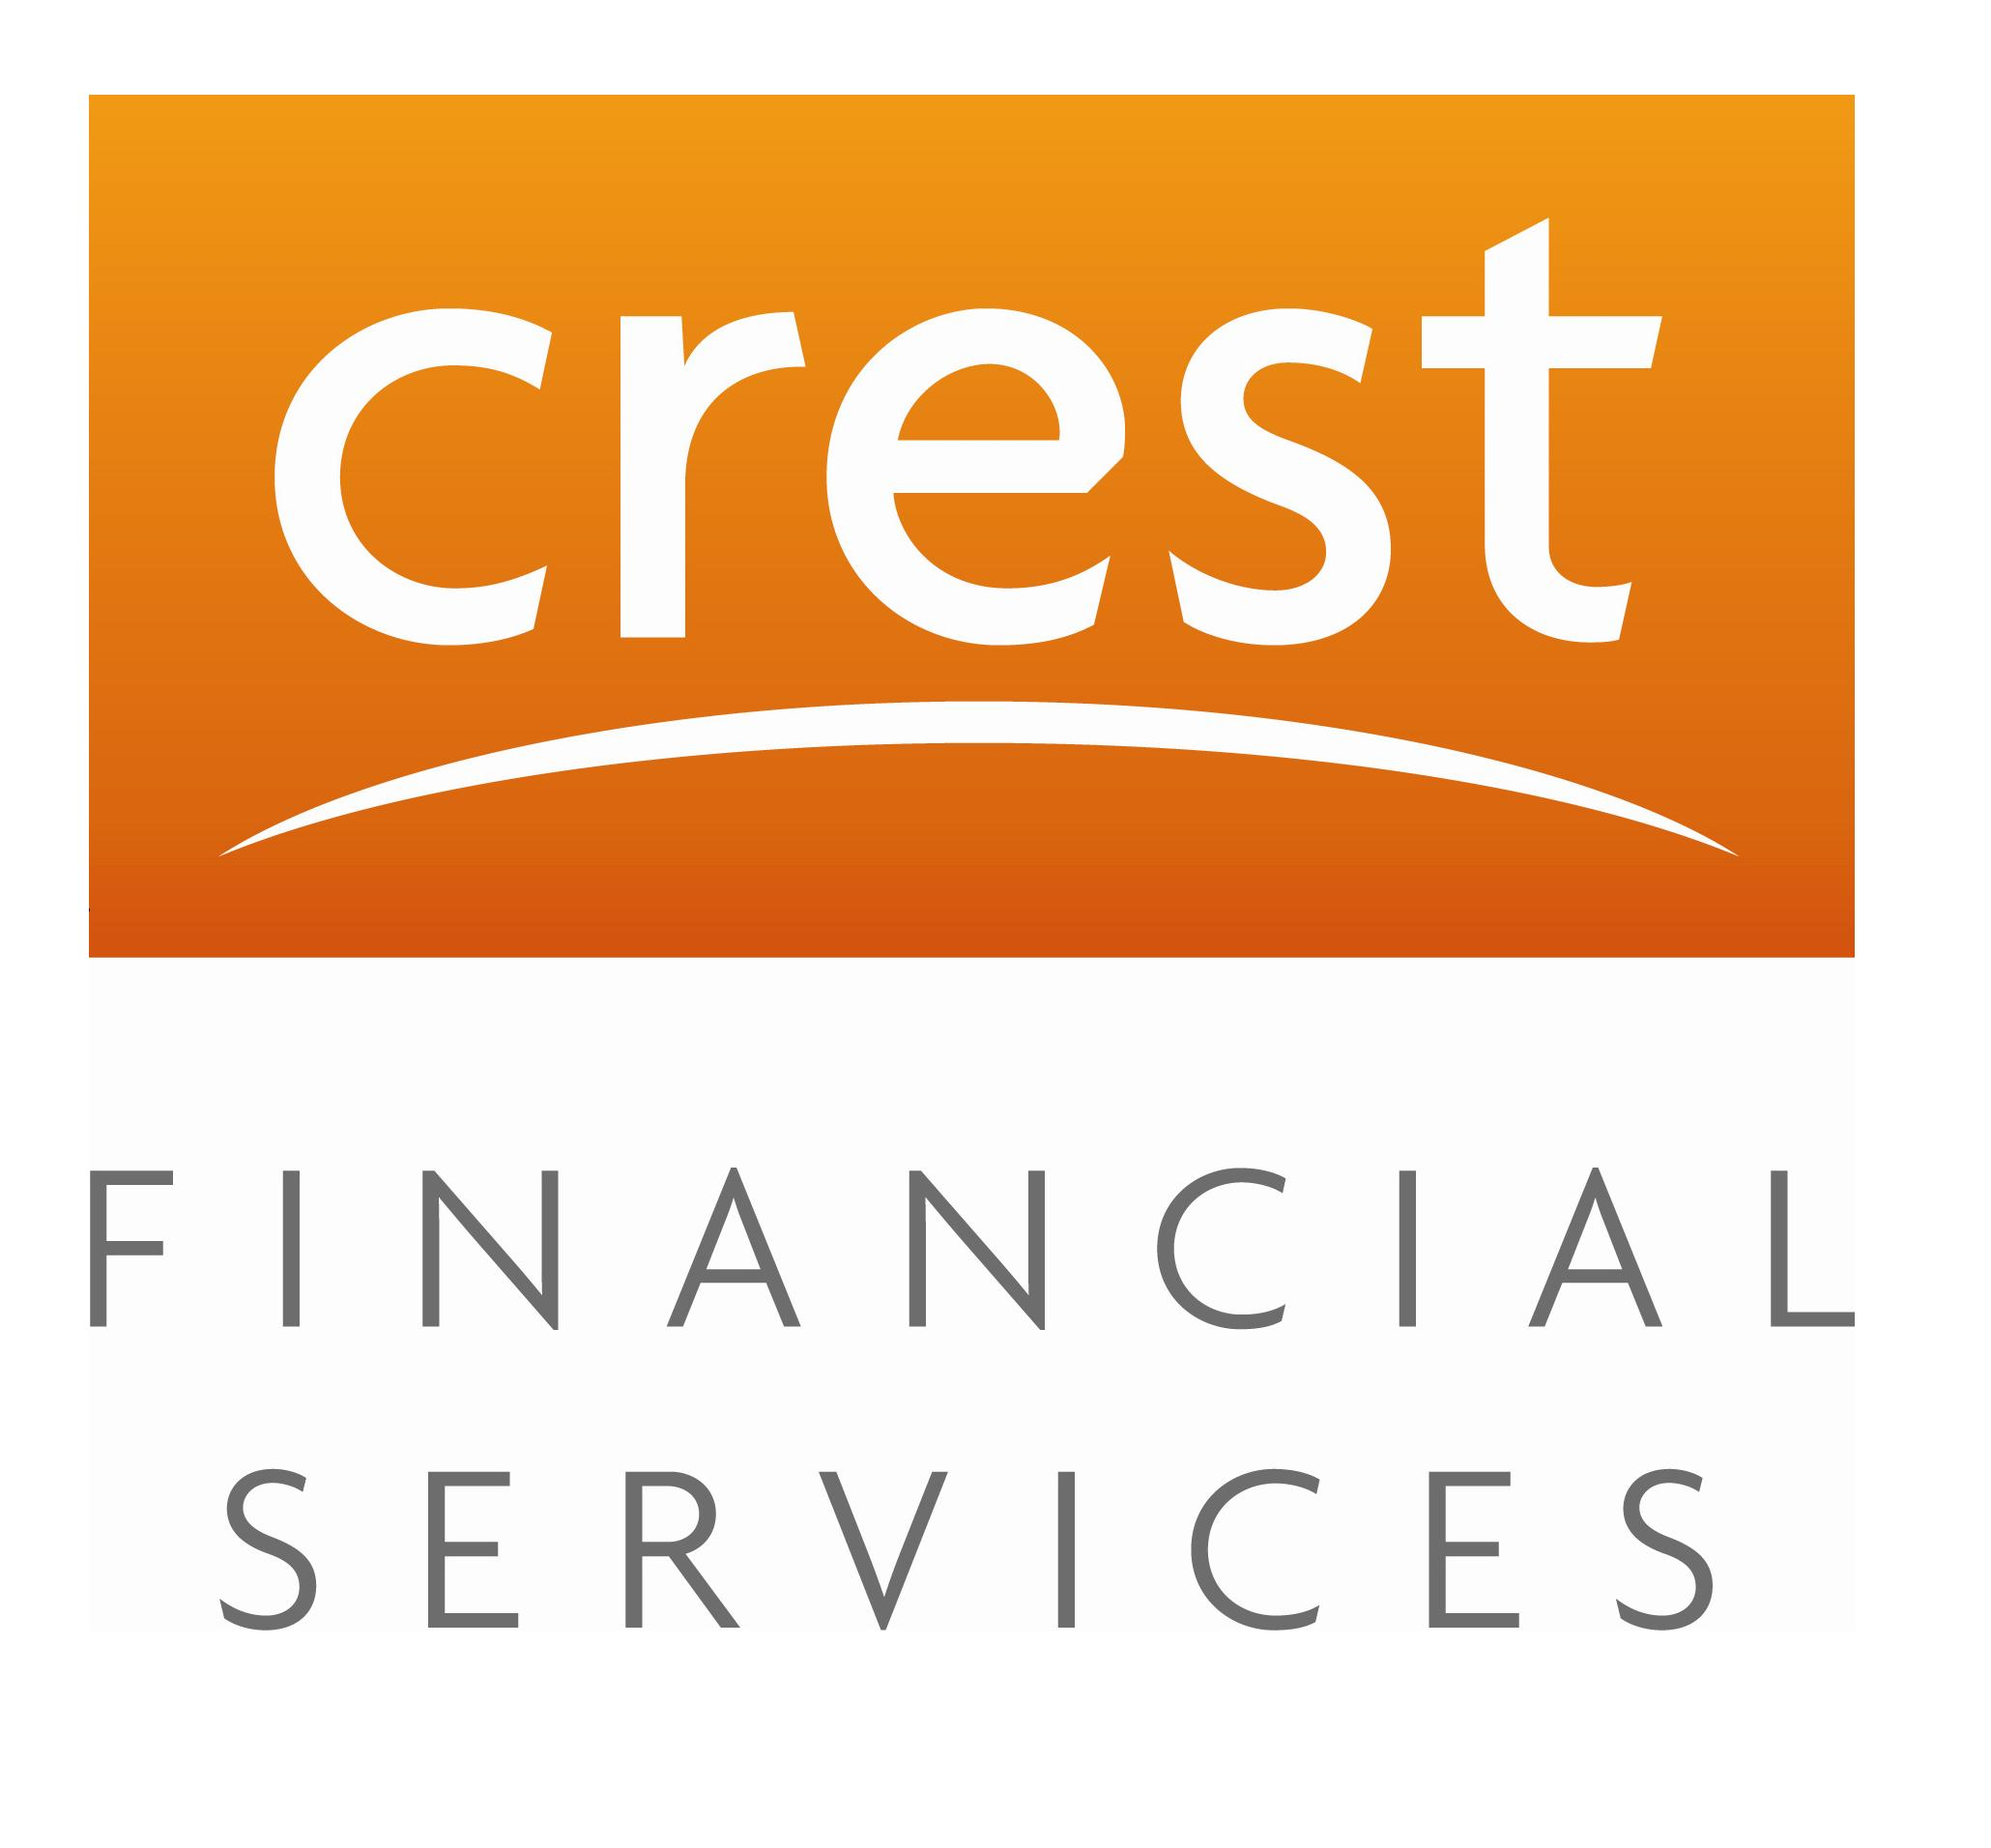 Financial Services: Financial Planning Newcastle